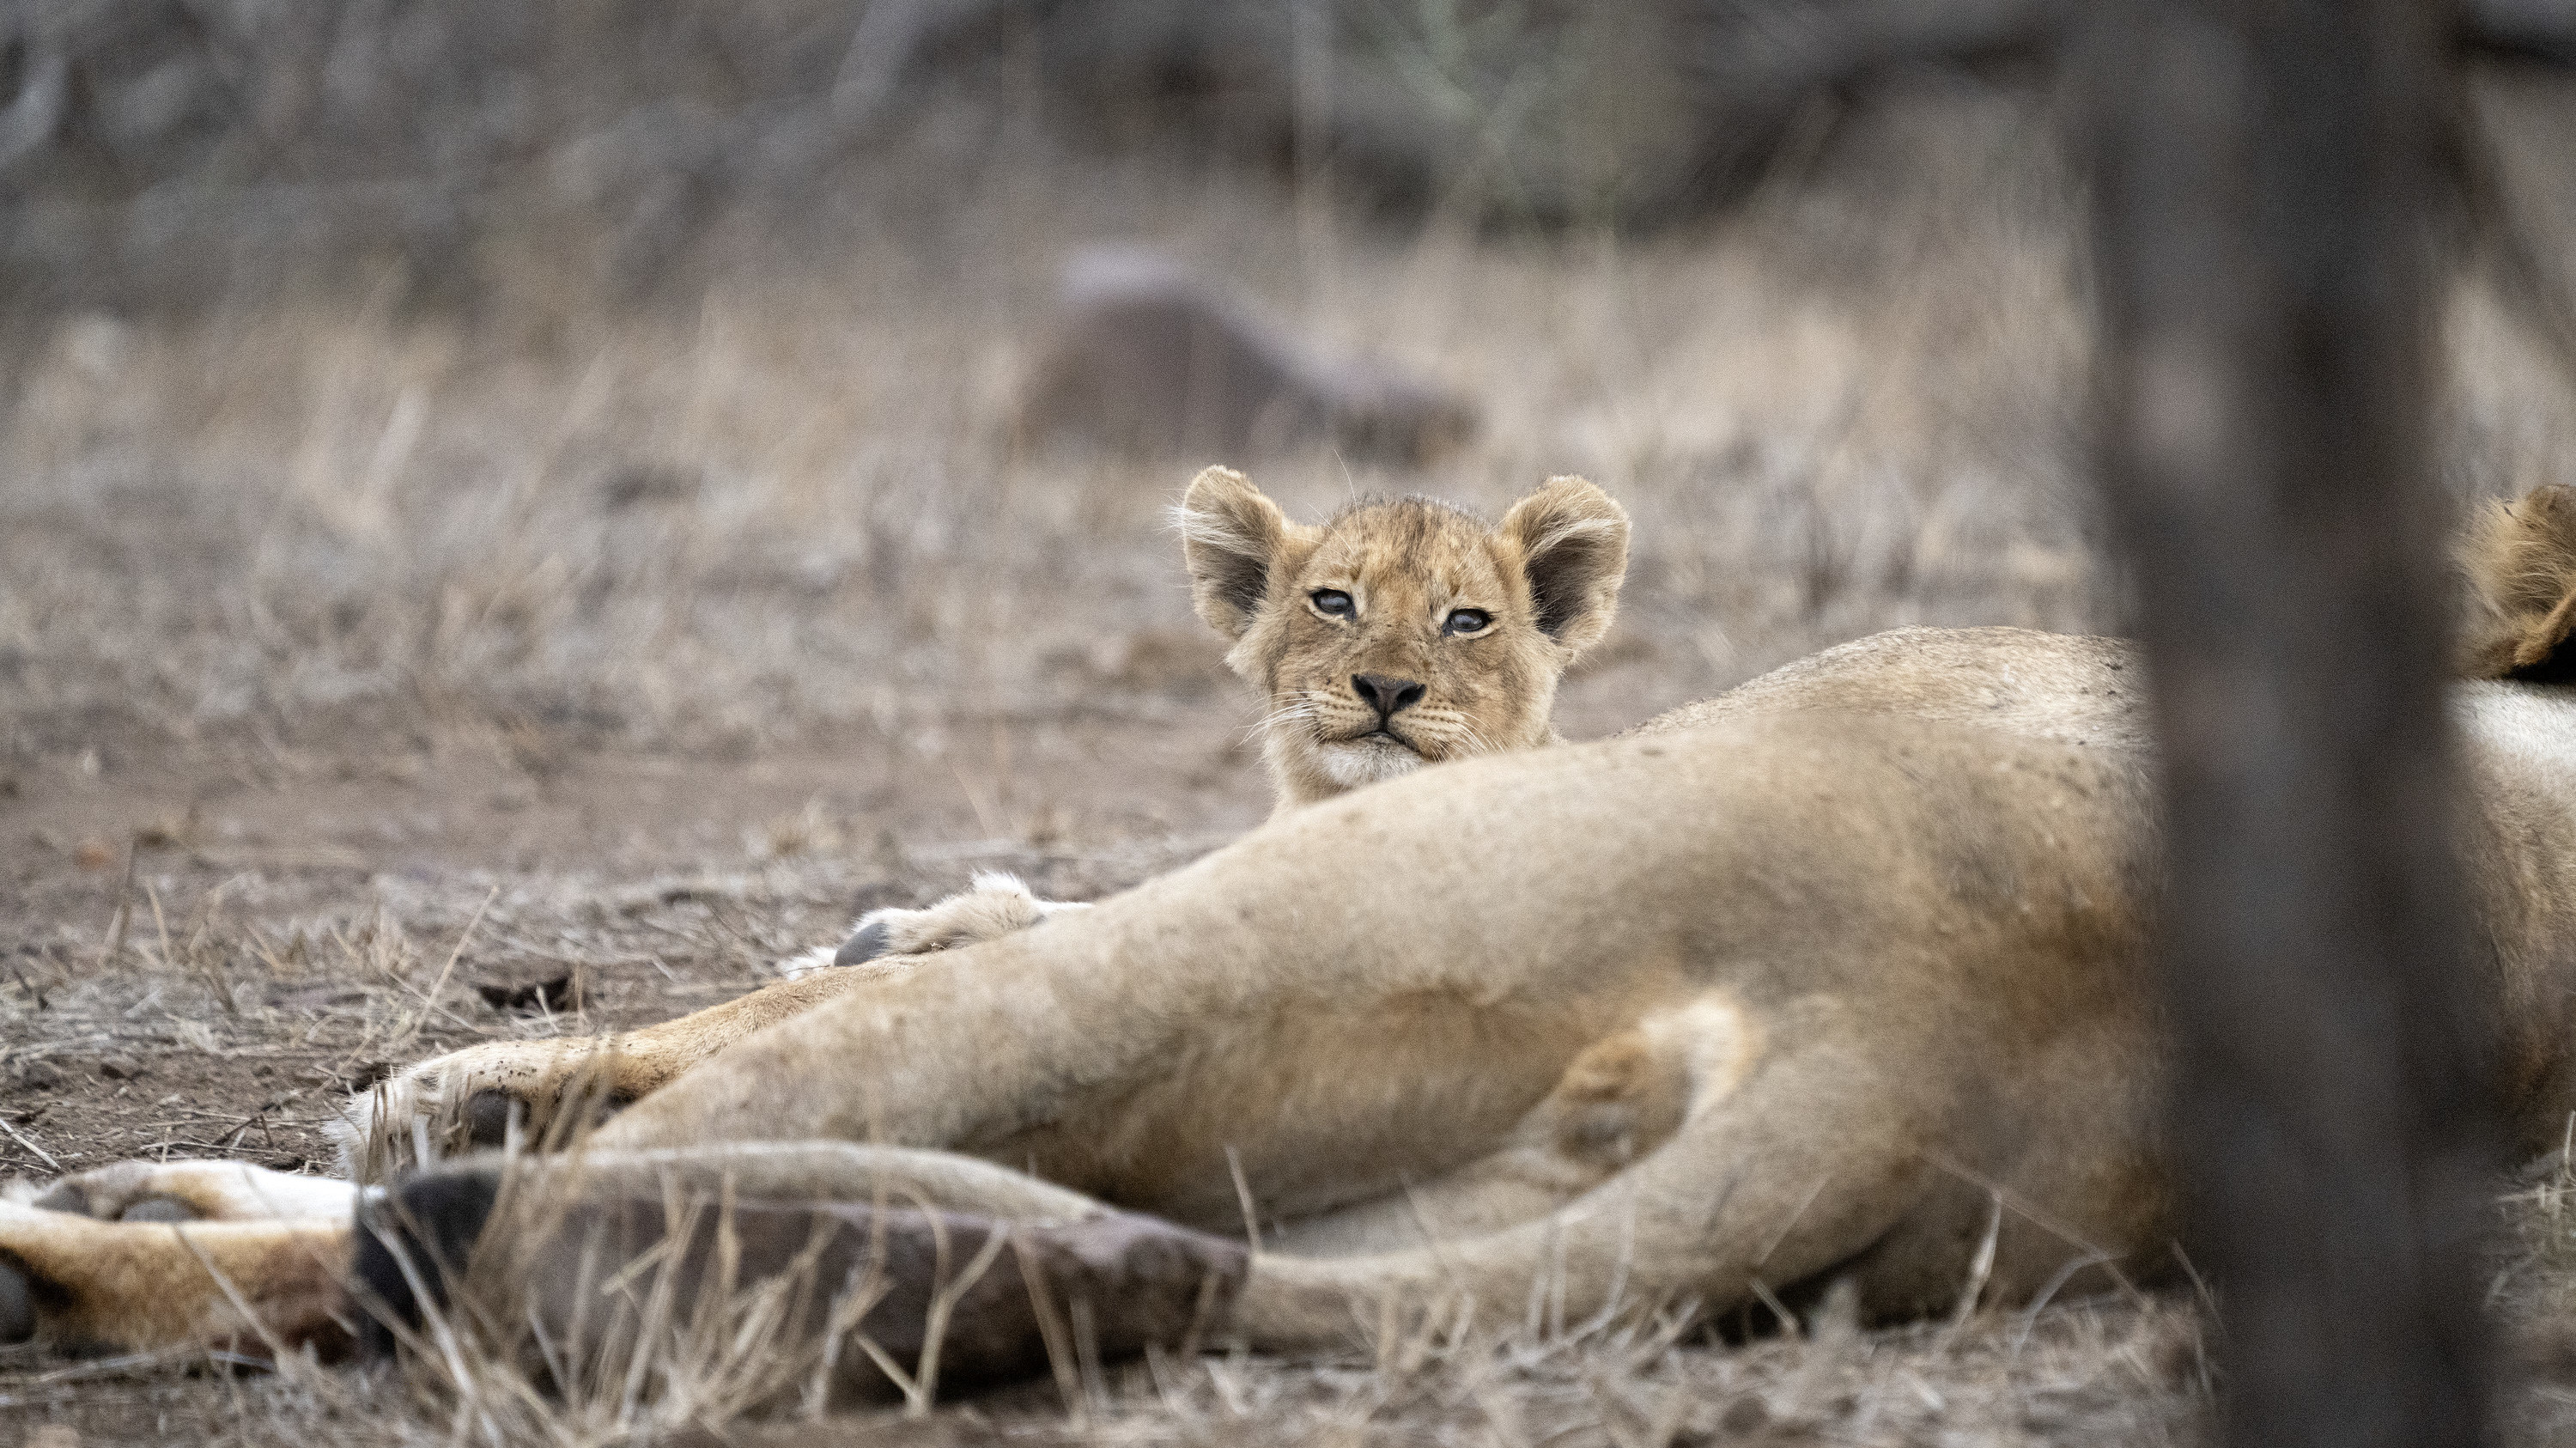 Malika rests with cub Issa. (National Geographic for Disney+/Russell MacLaughlin)